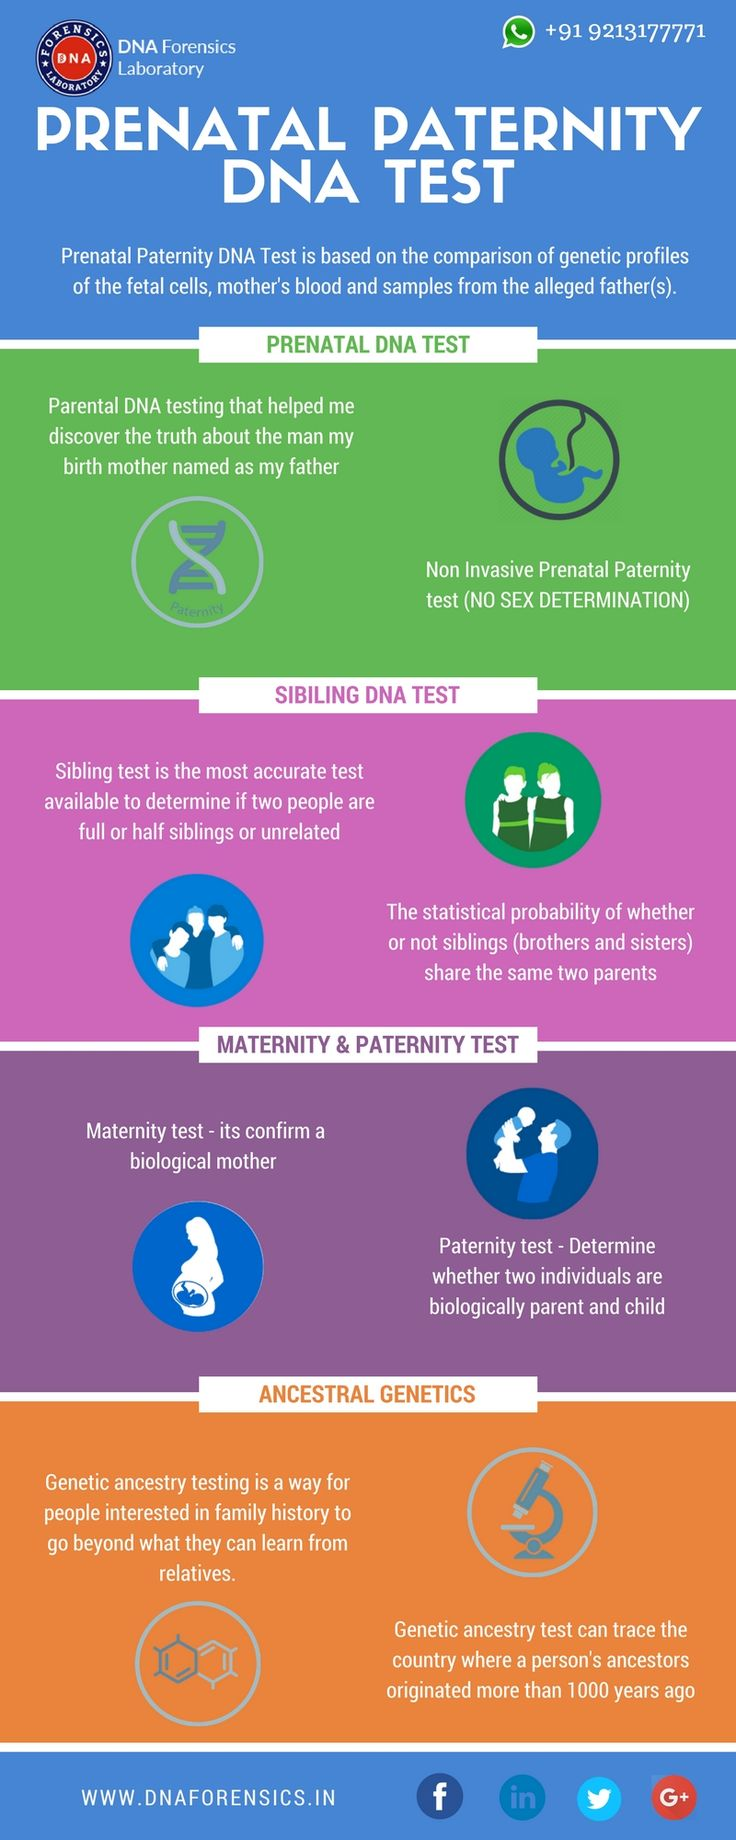 Prenatal Paternity DNA Test